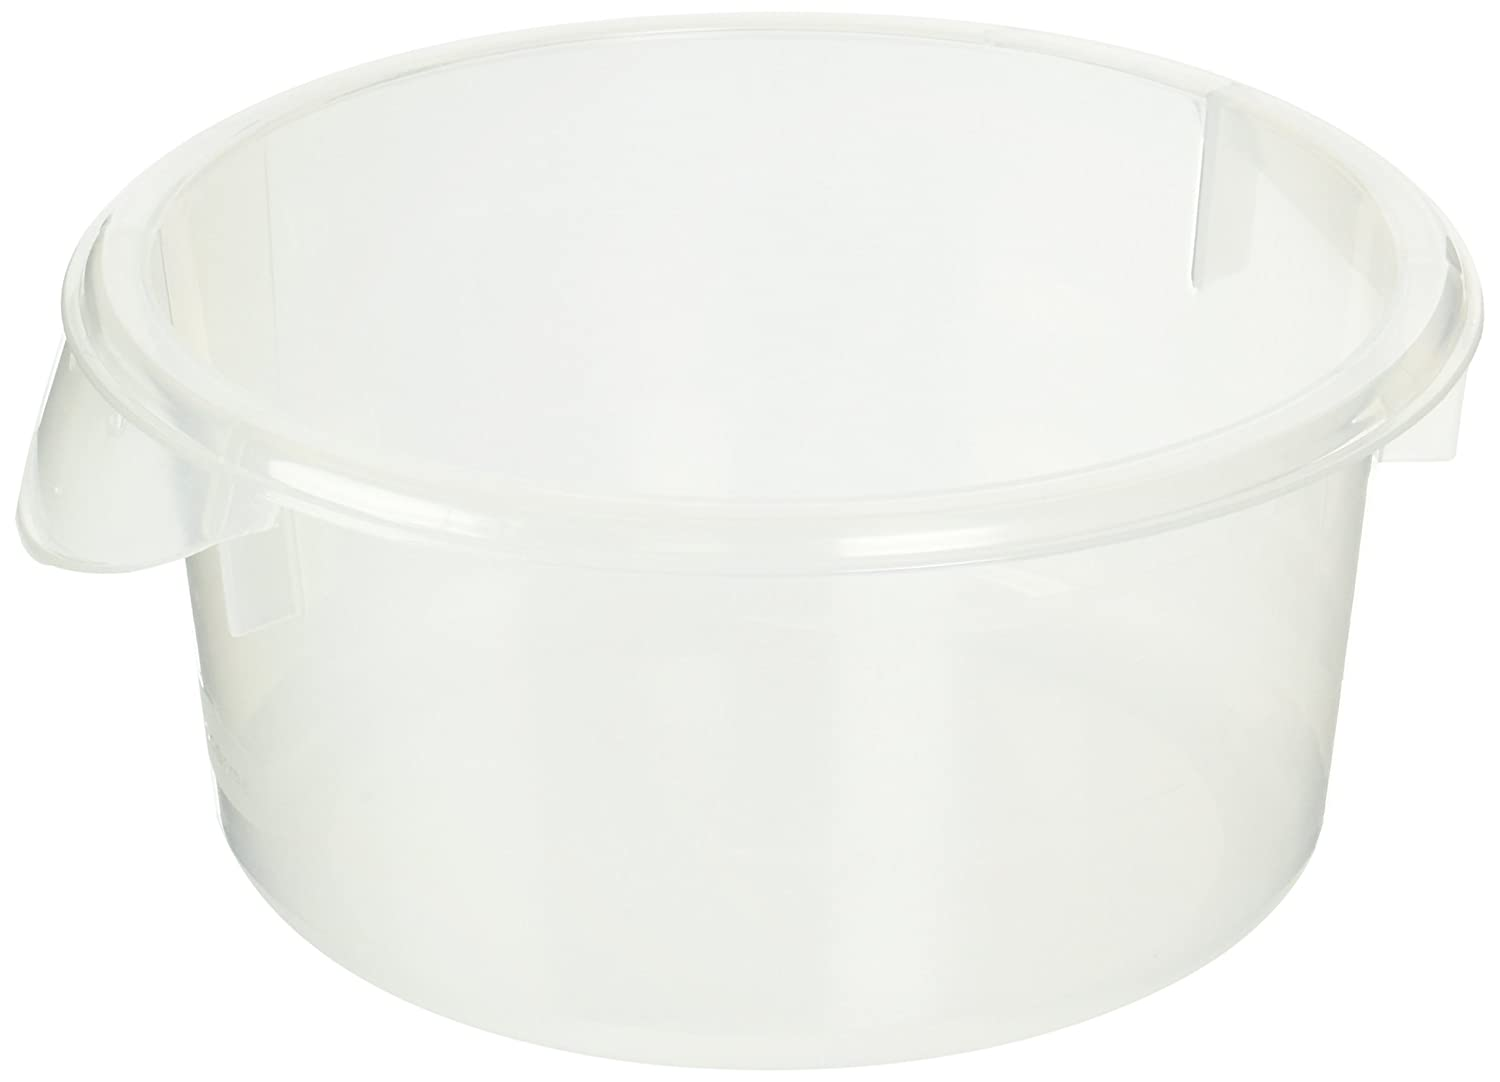 Rubbermaid Commercial Products Food Storage Container, 2 qt. (Pack of 12)